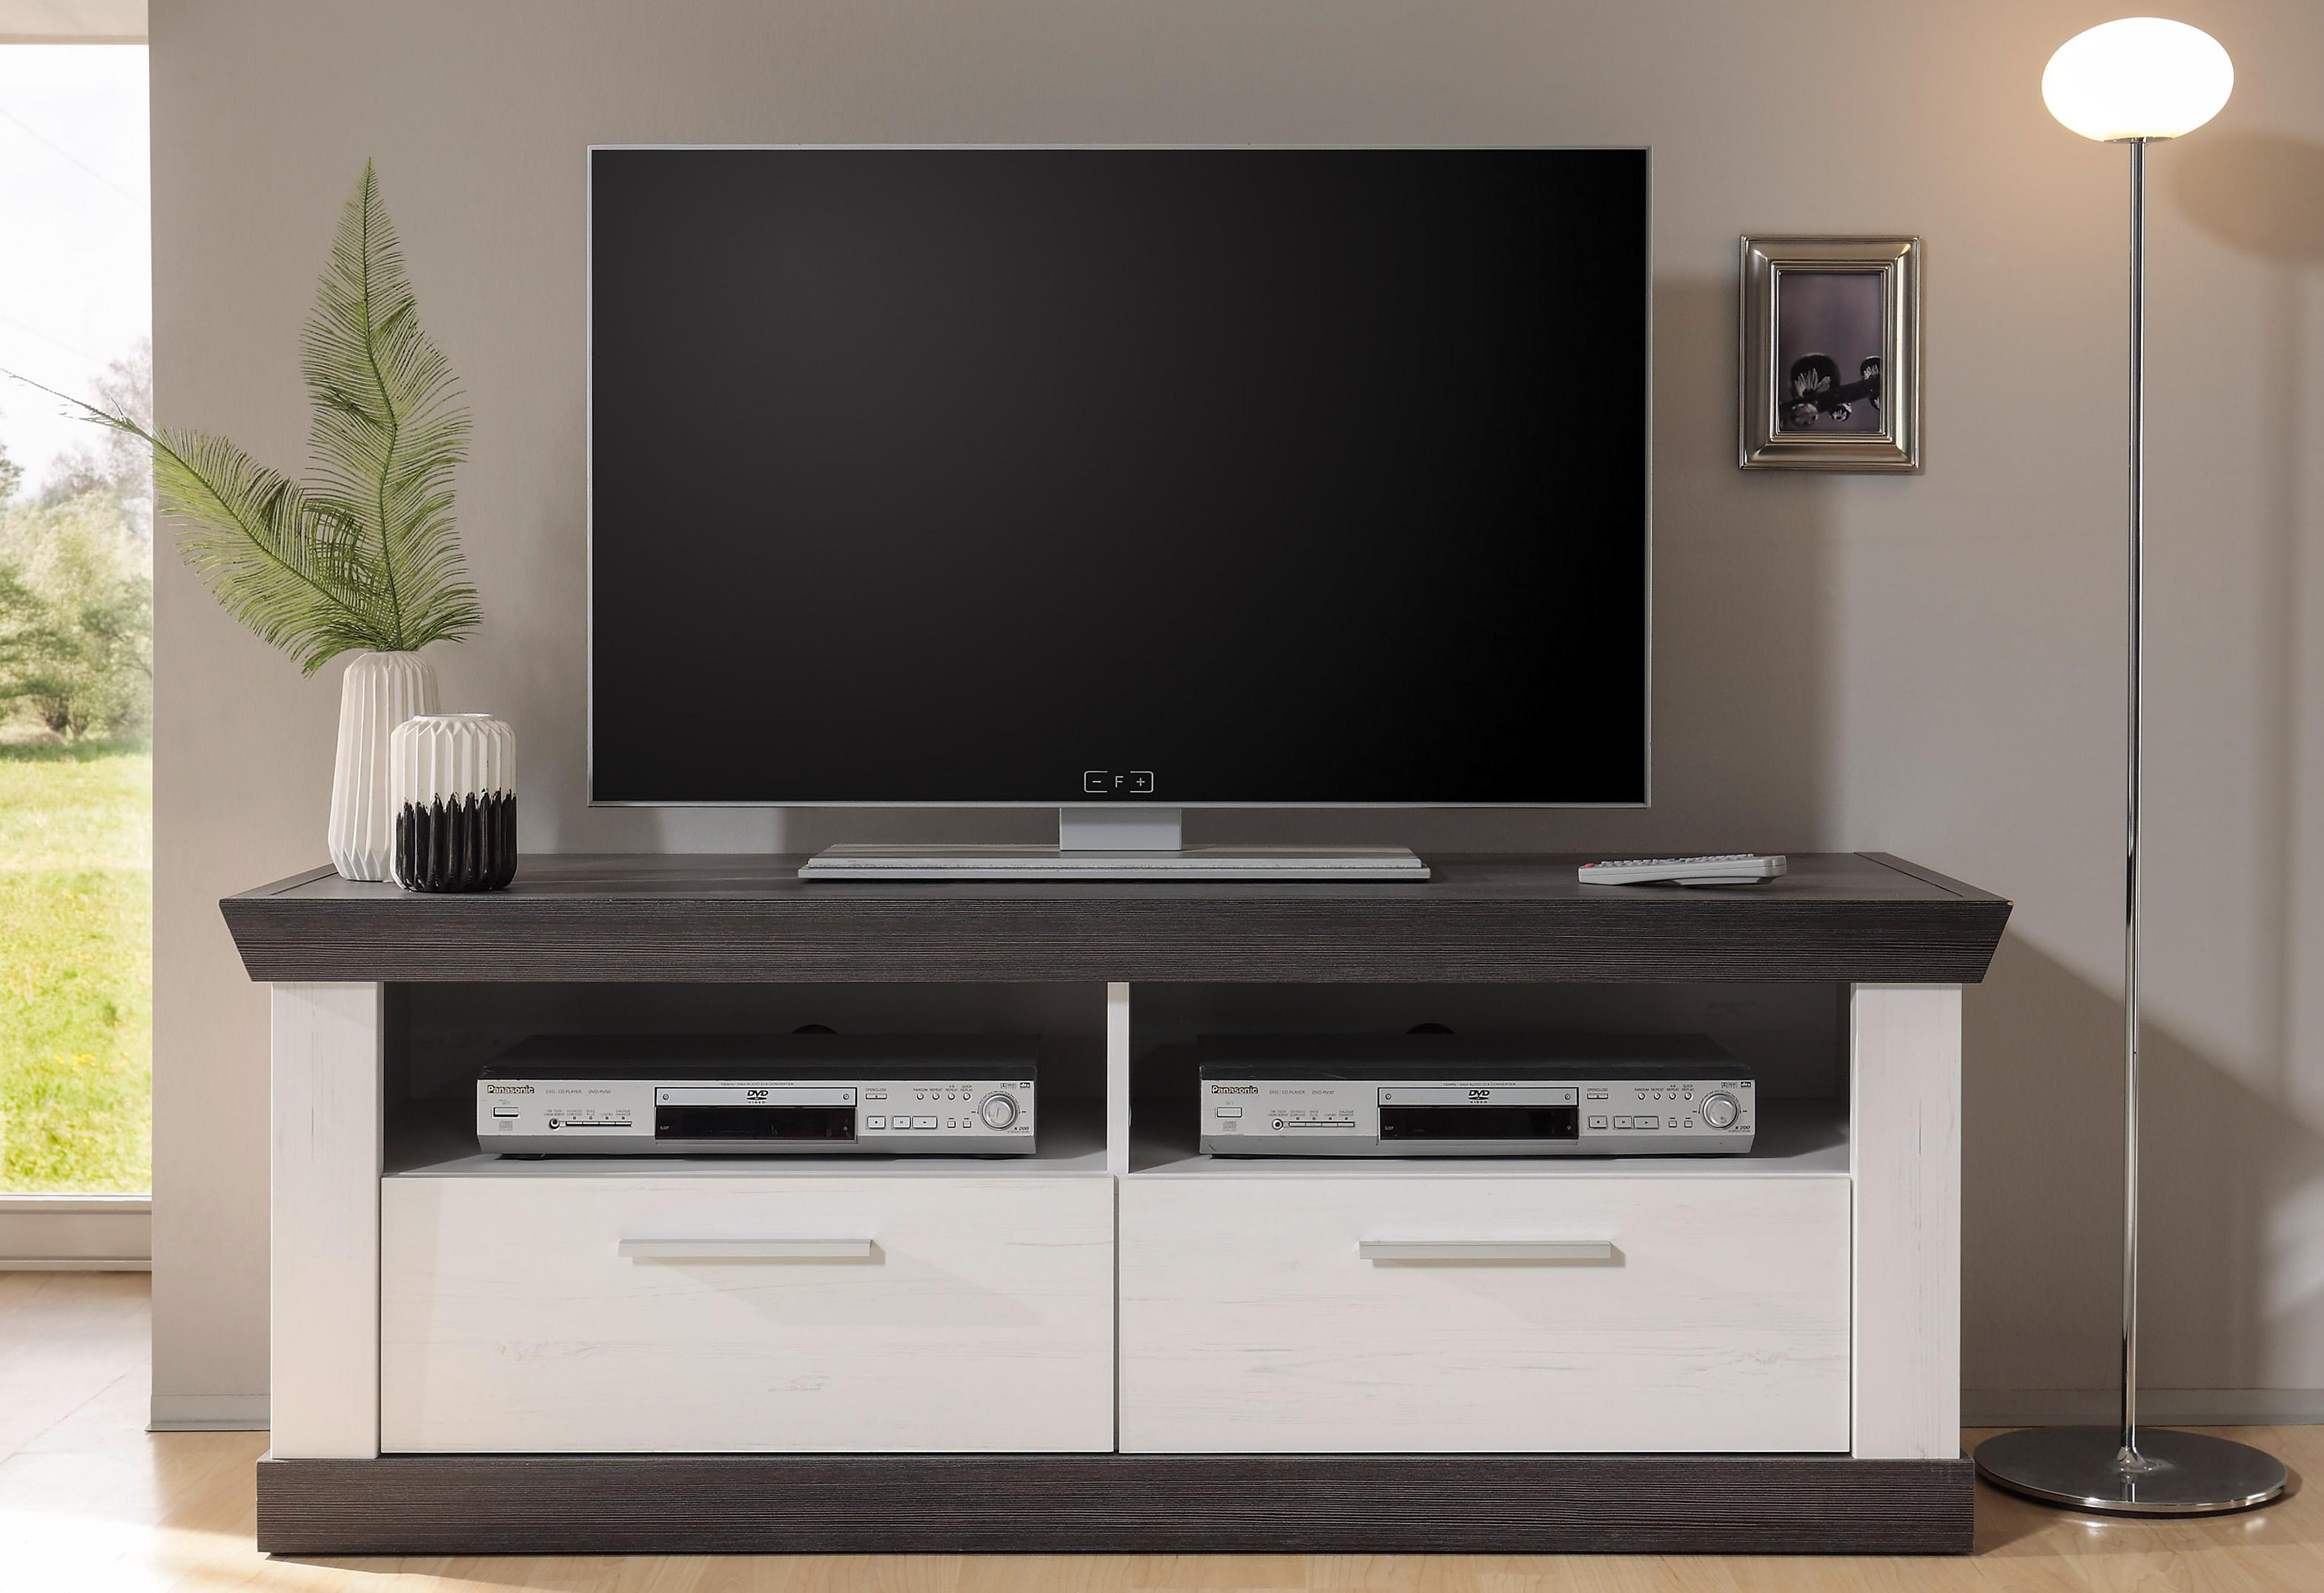 home affaire lowboard siena breedte 135 cm bestel nu bij otto. Black Bedroom Furniture Sets. Home Design Ideas